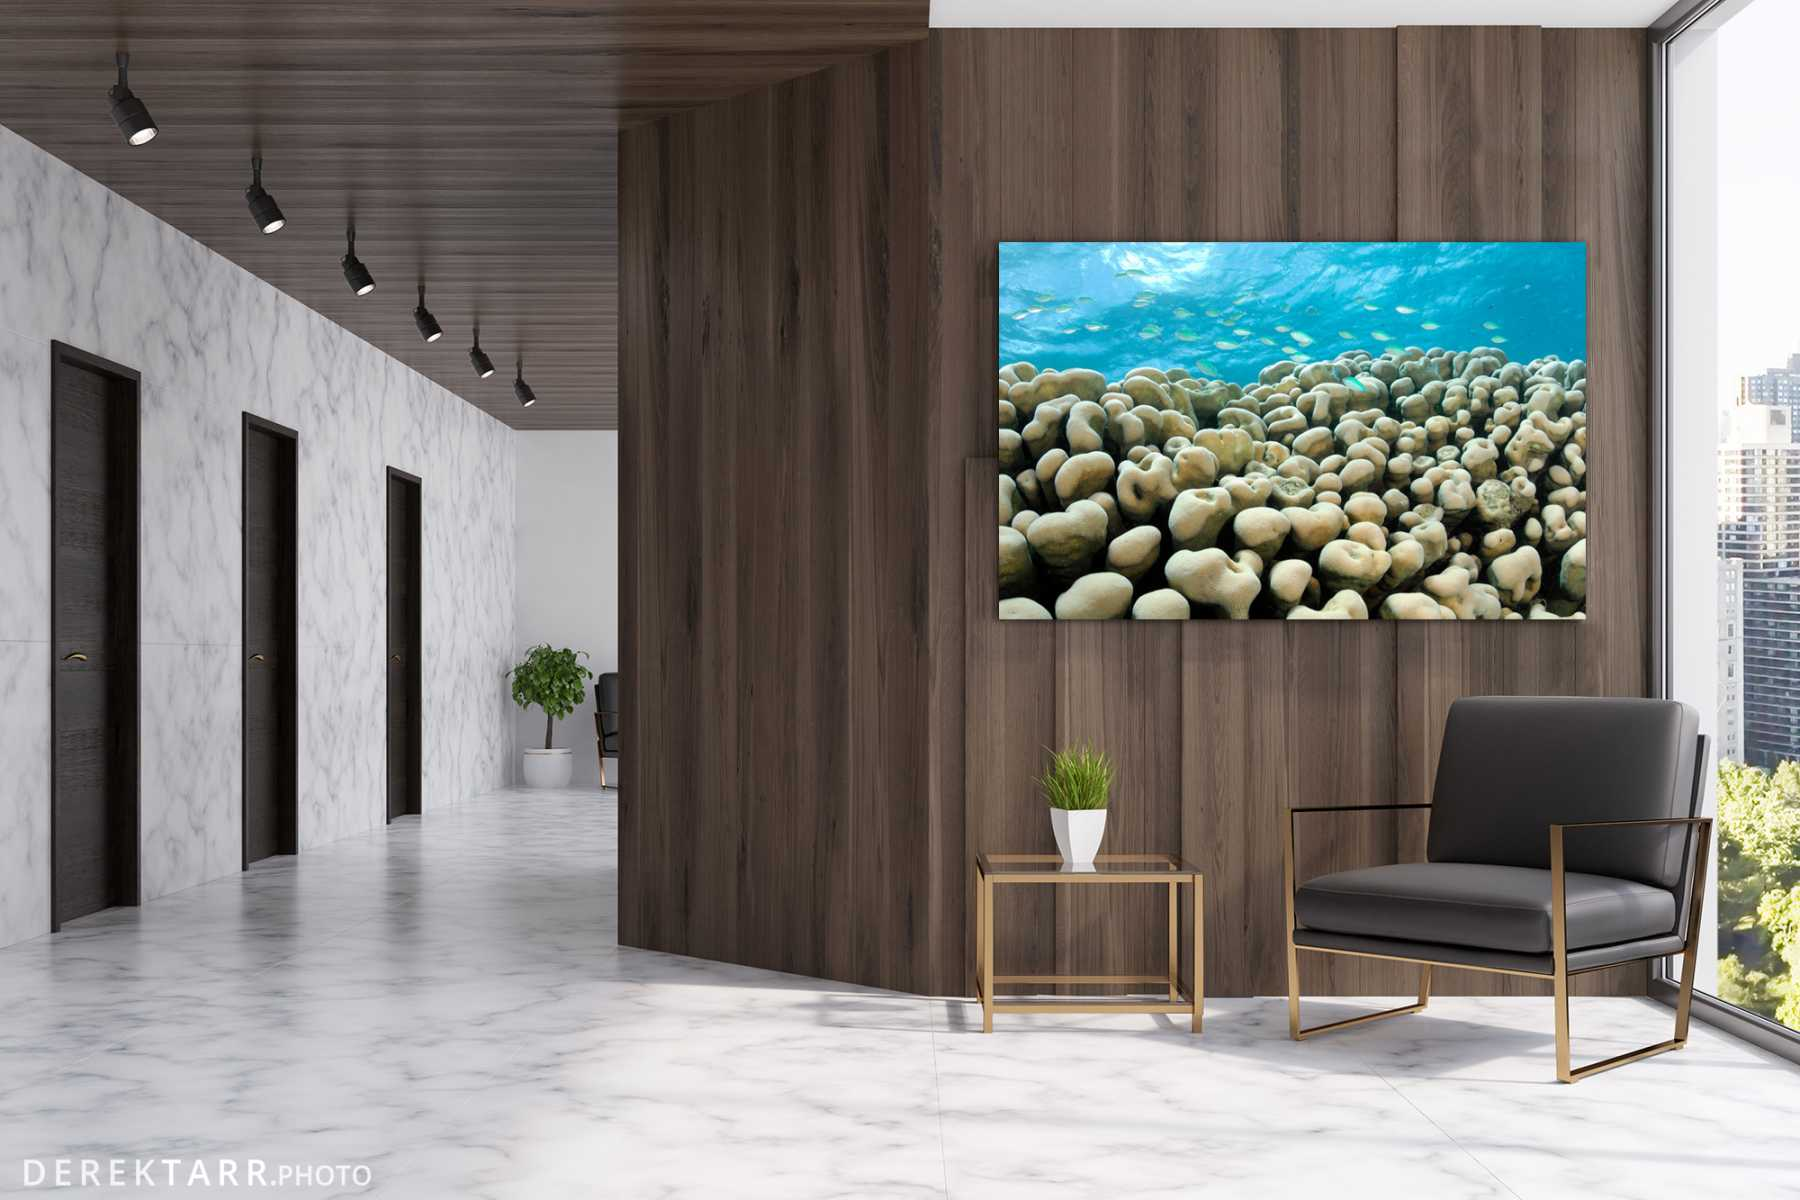 Office hallway with Green Chromis on Coral shown on wall